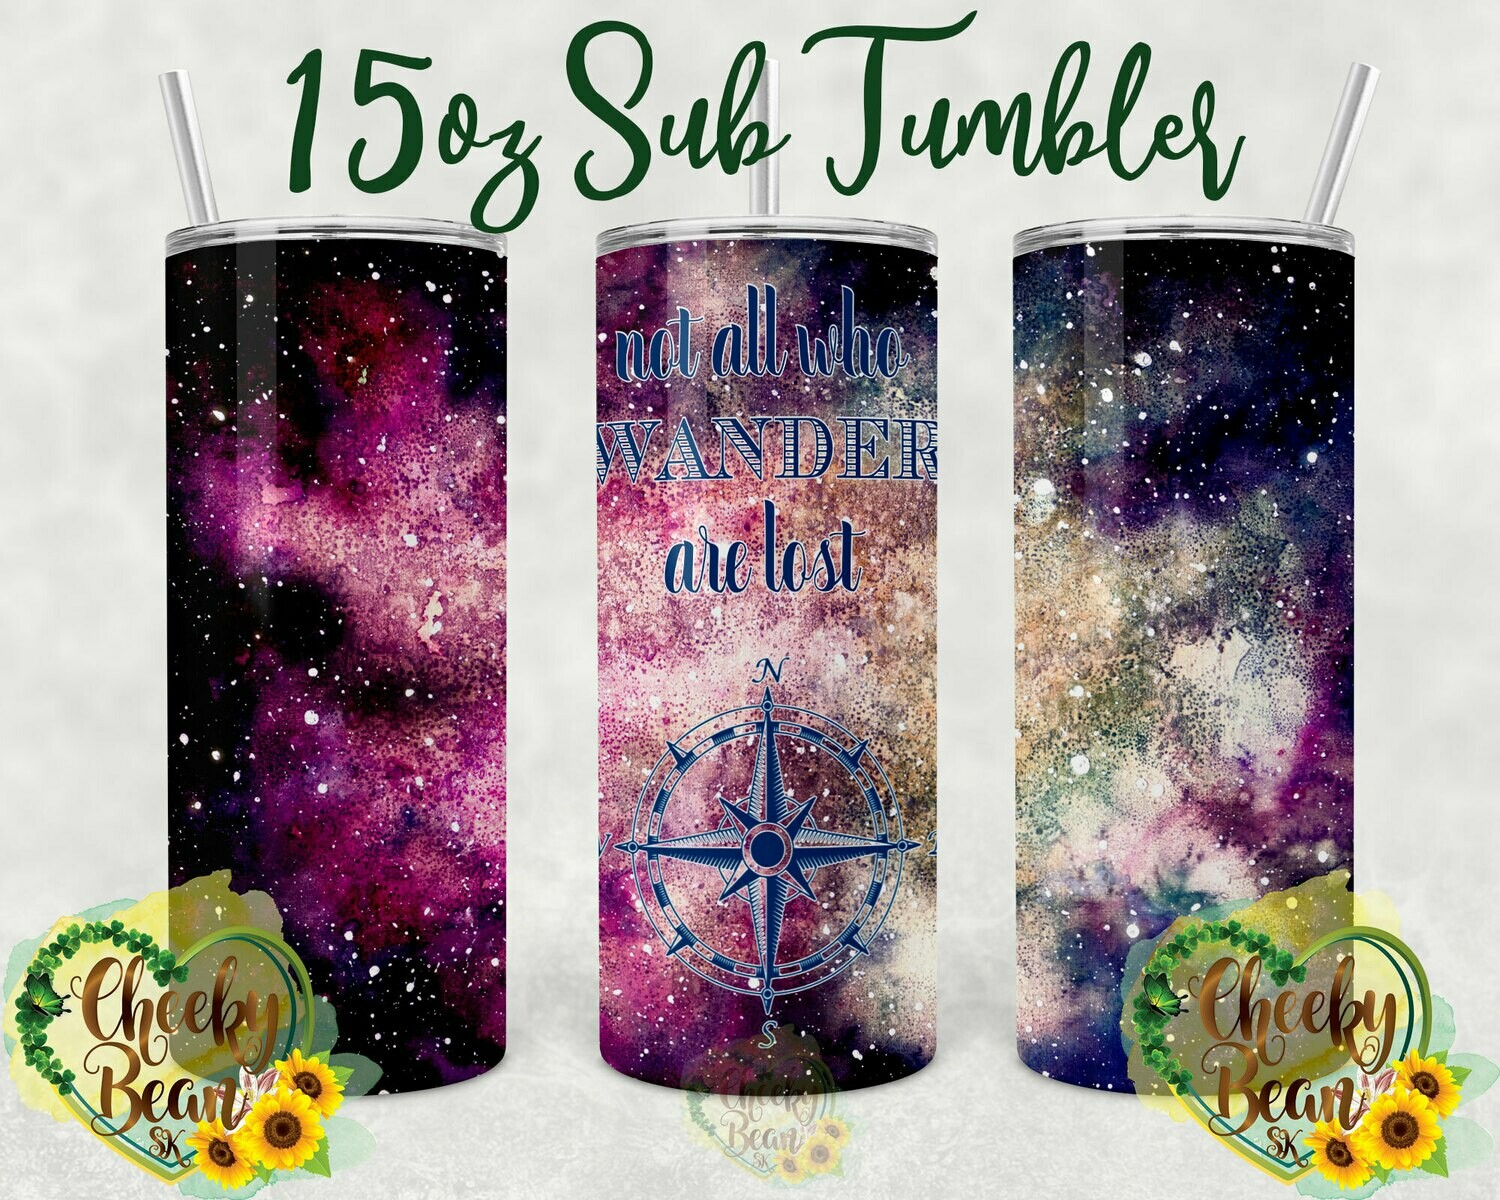 Not All Who Wander Are Lost 15oz Sublimation Tumbler